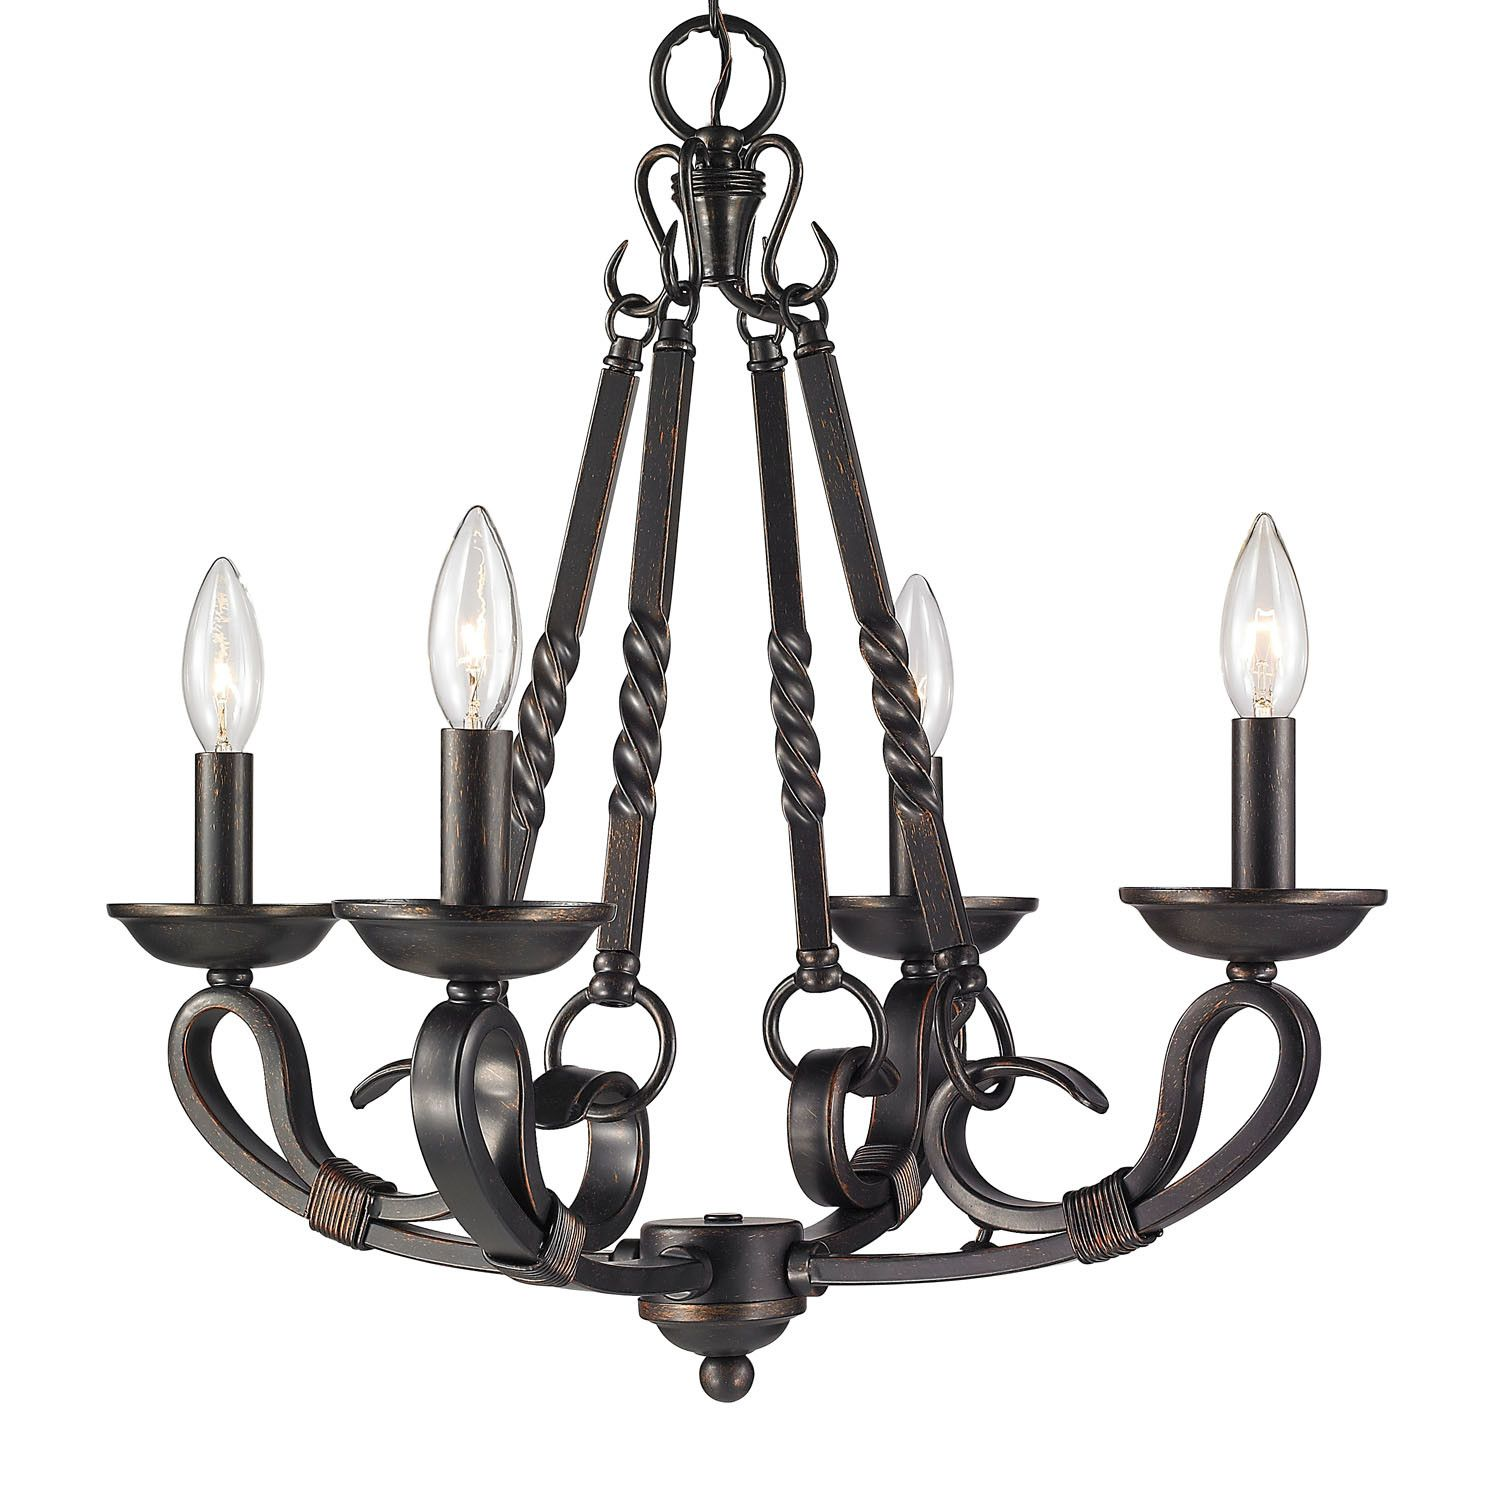 surprising Wildon Home Chandelier Part - 10: Wildon Home ® Nikki 4 Light Candle Chandelier